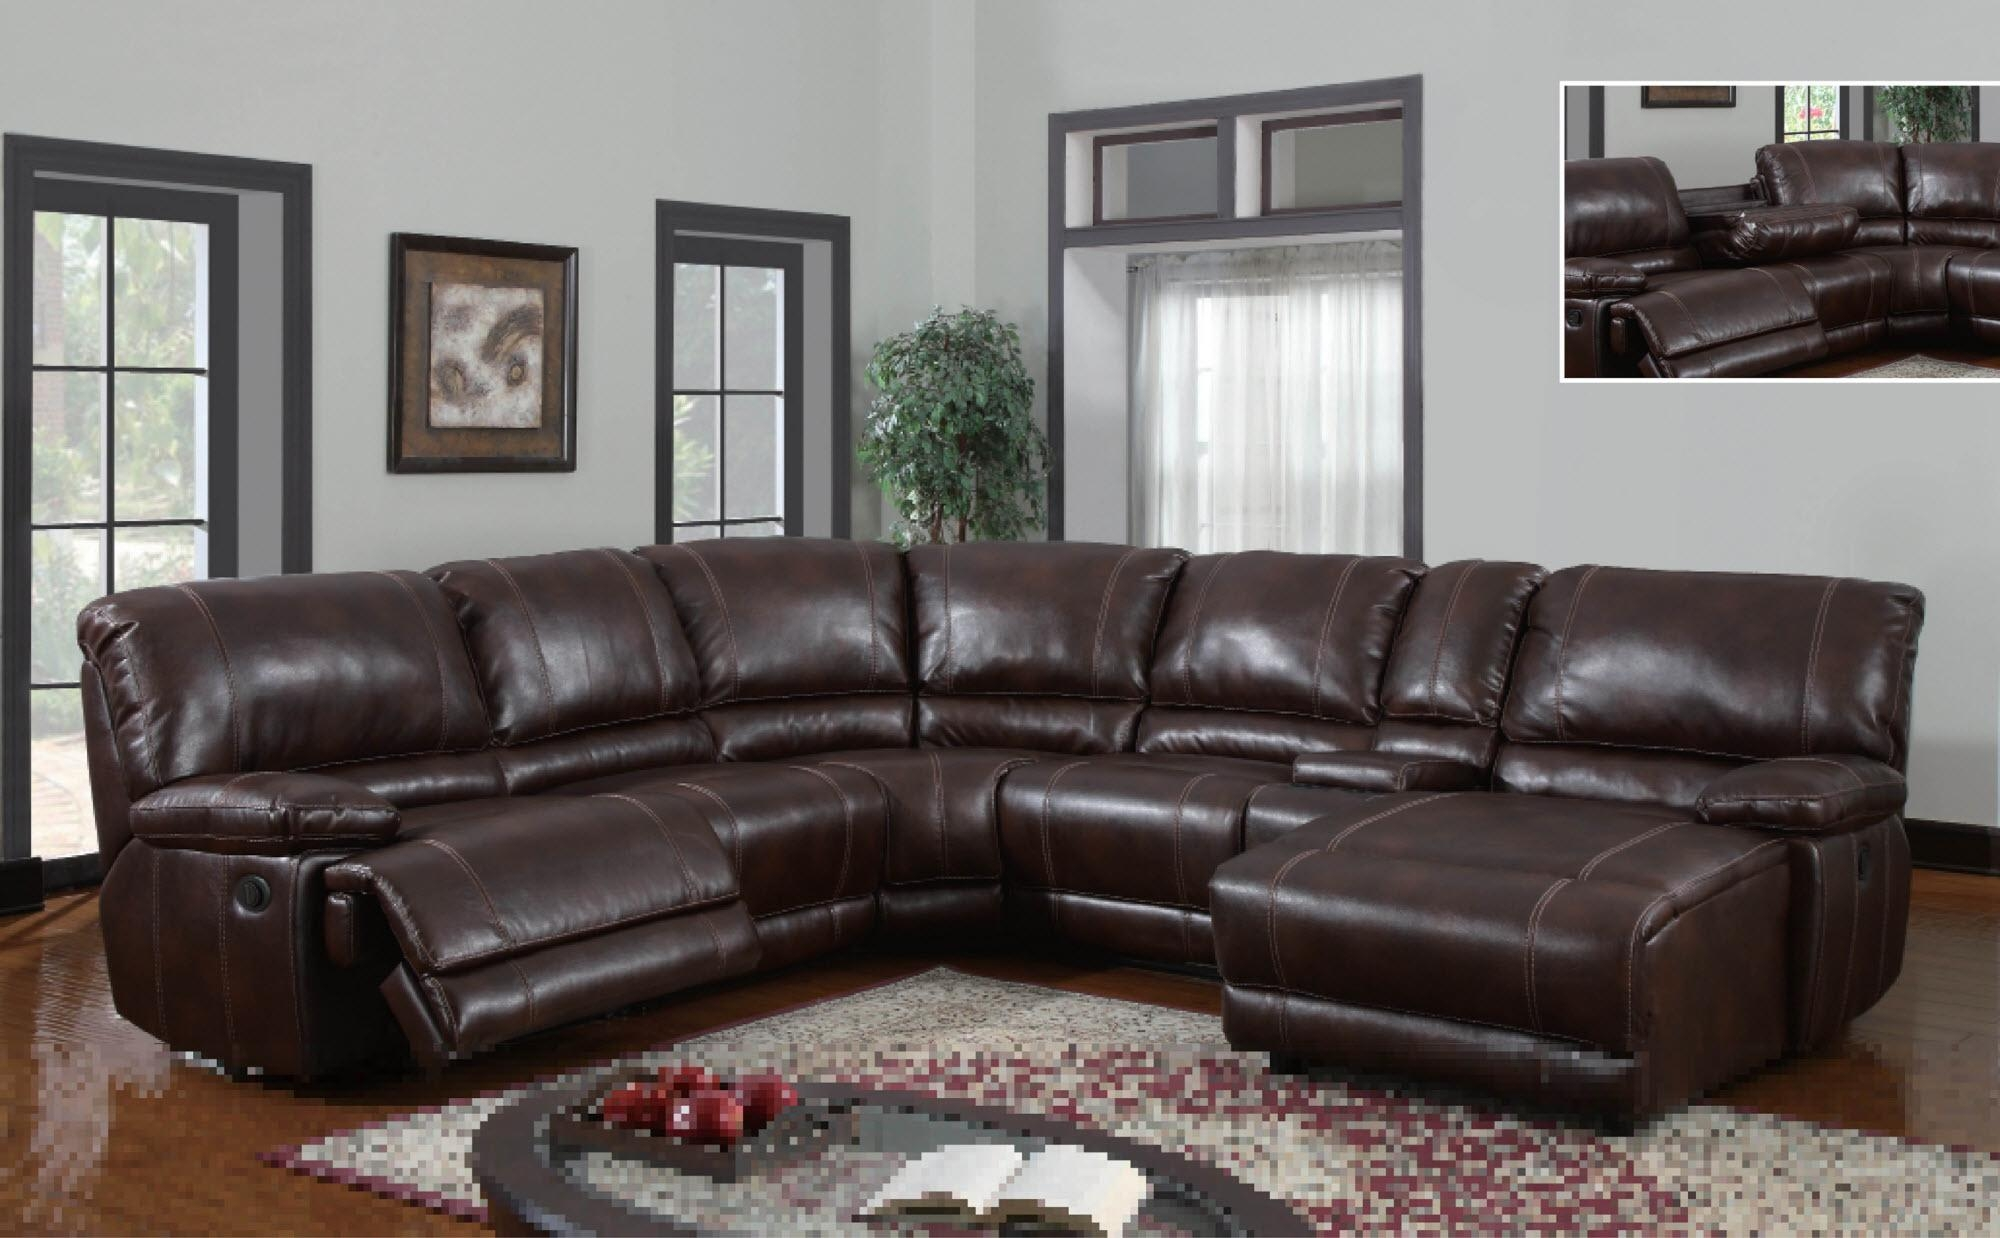 Sectional Sofa With Chaise Recliner And Sleeper | Tehranmix Decoration Regarding Sleeper Recliner Sectional (Image 13 of 20)